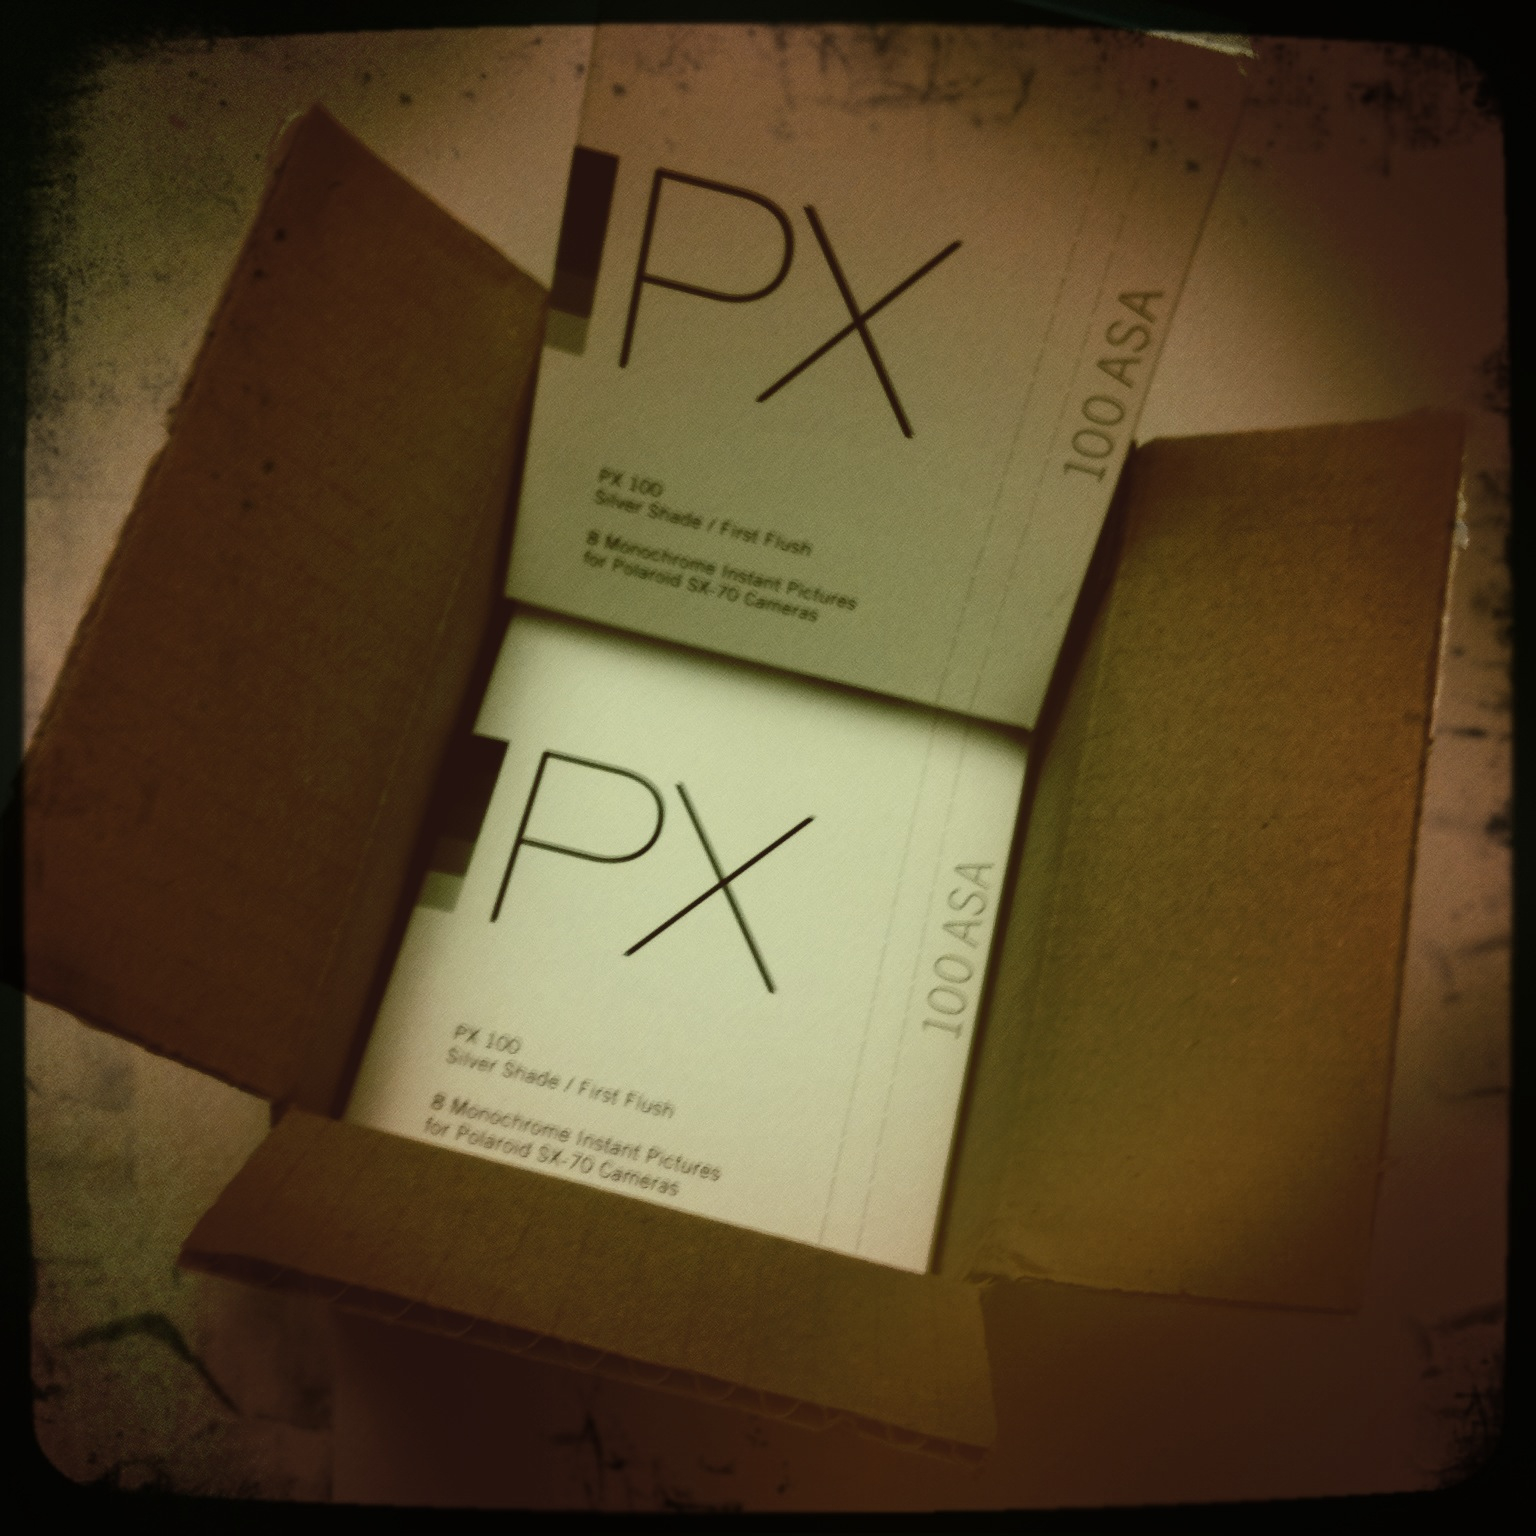 PX100 Impossible